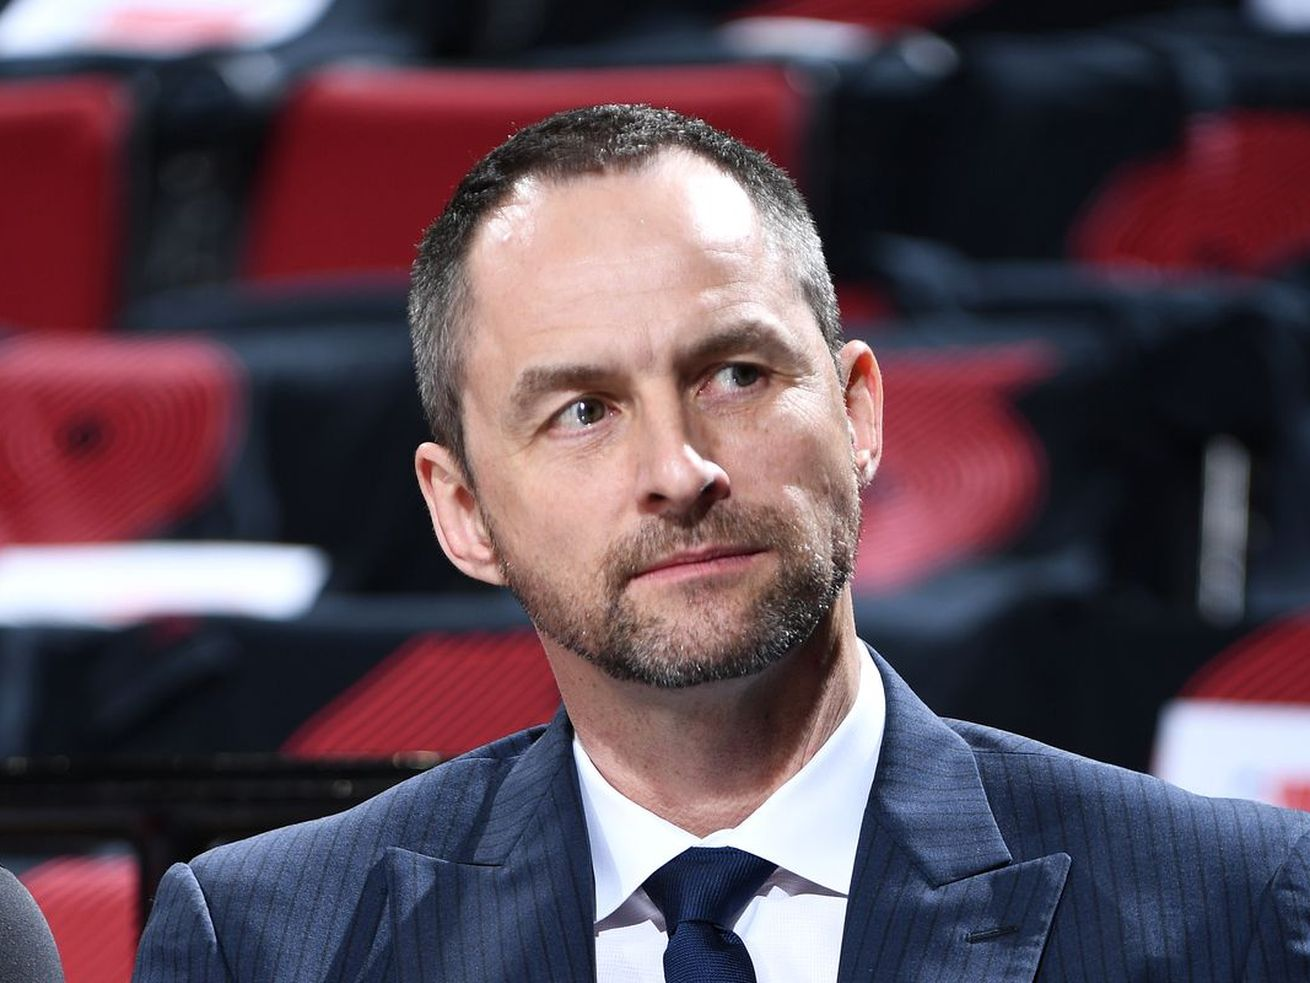 Bulls executive Arturas Karnisovas is set to have draft lottery clarity